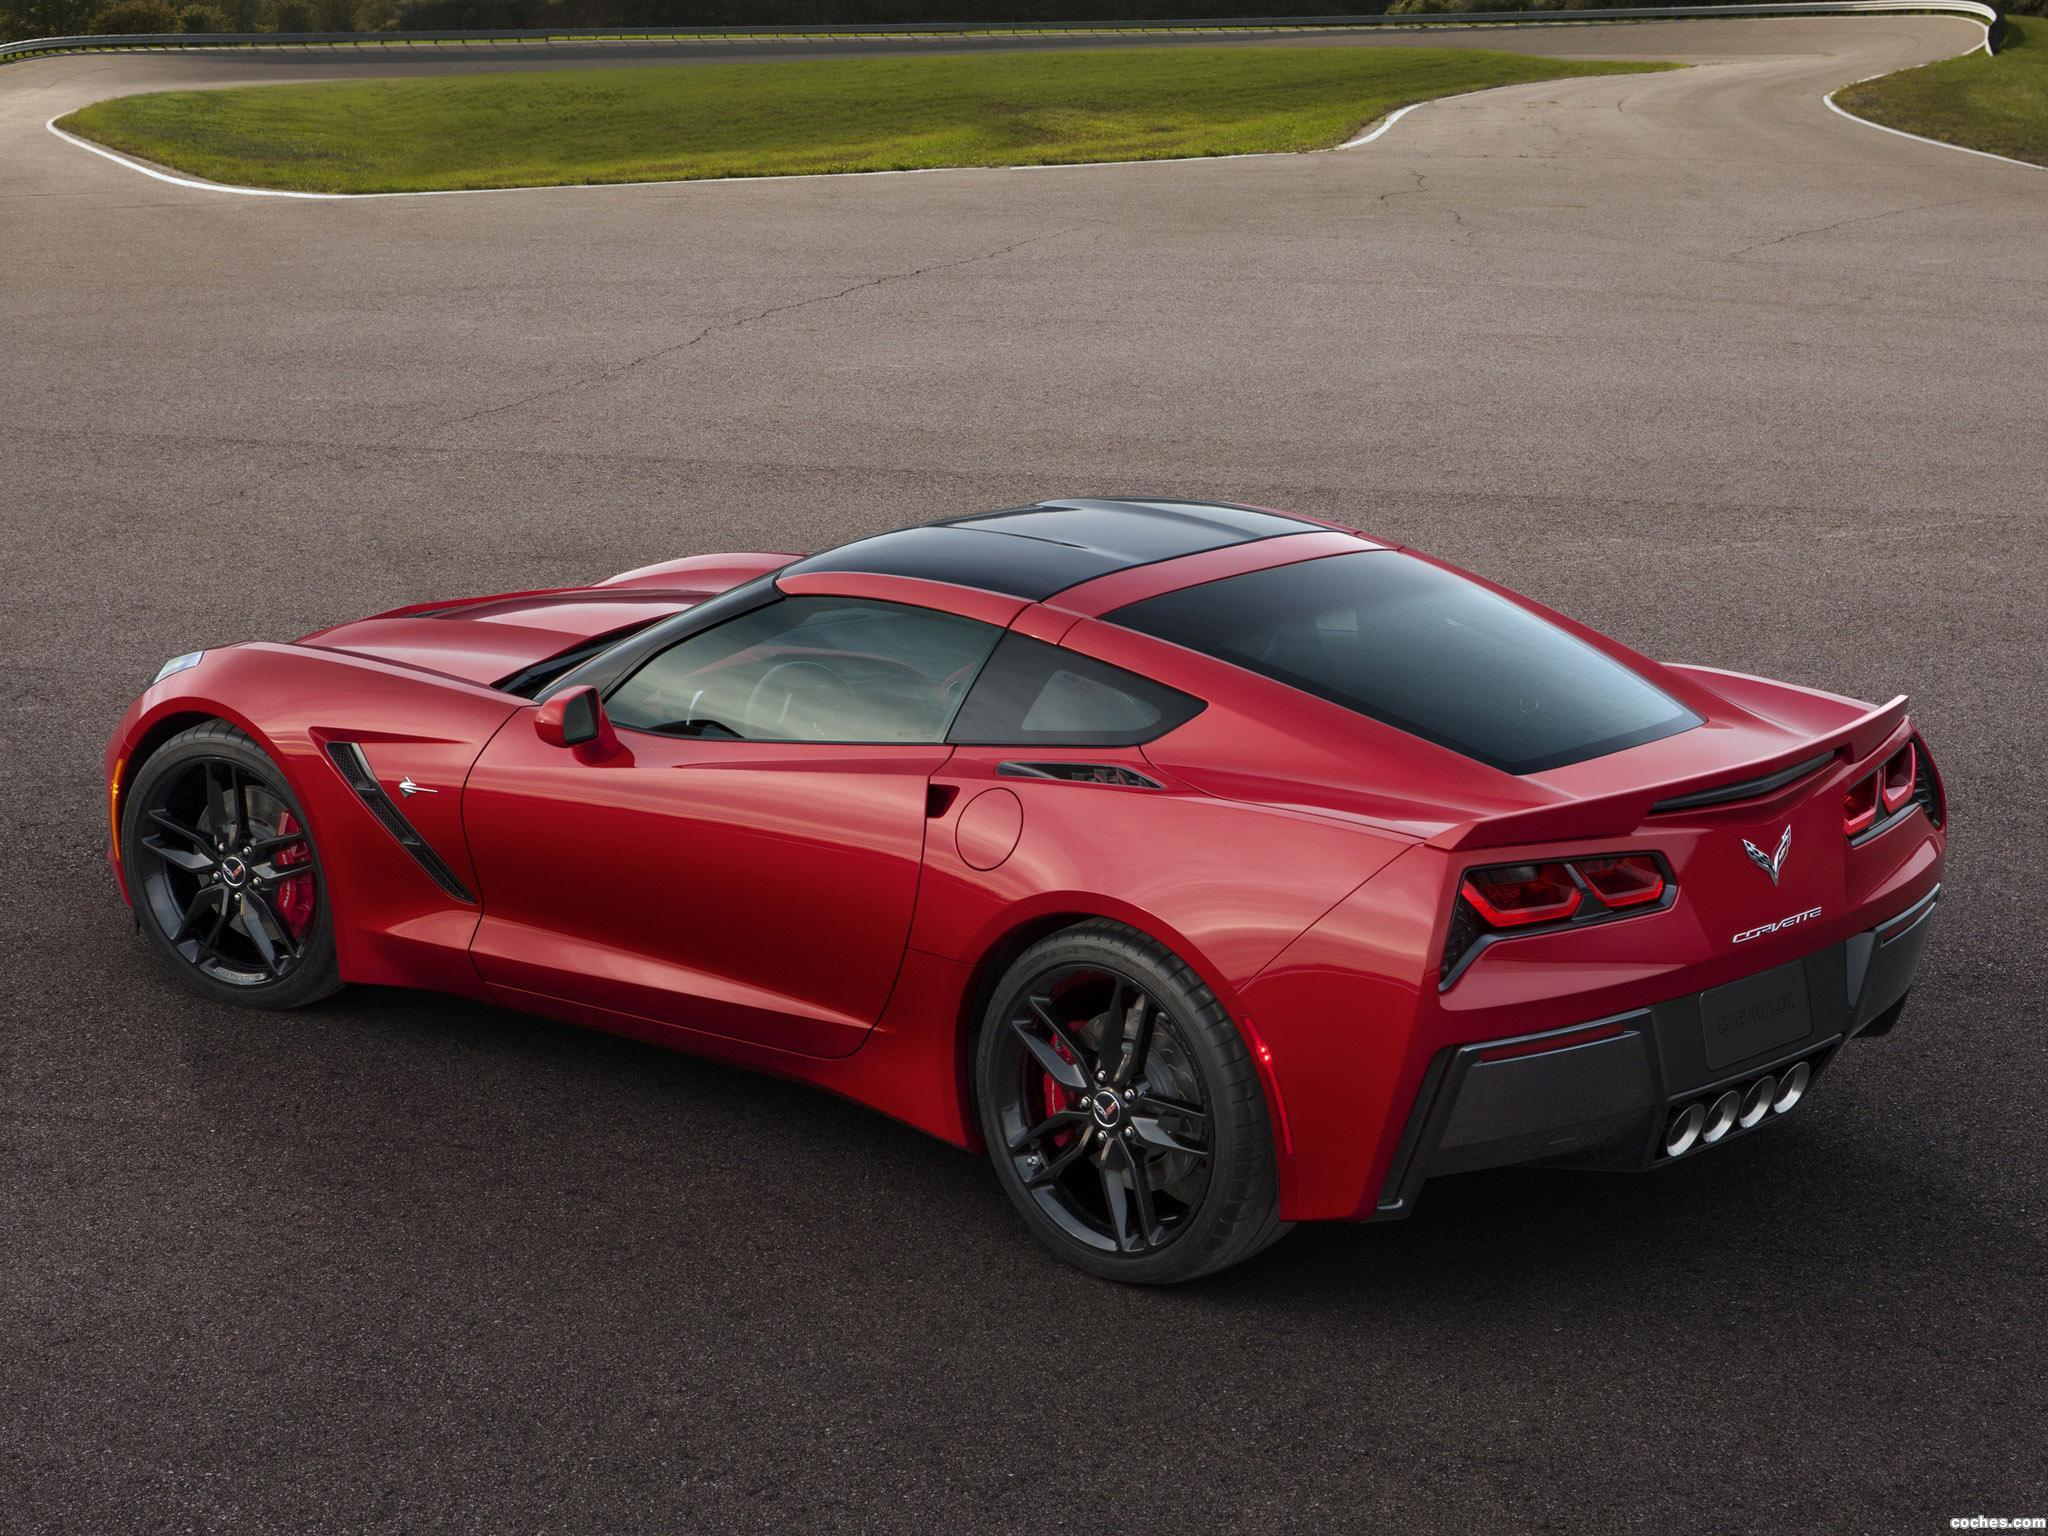 Foto 2 de Chevrolet Corvette Stingray C7 2014